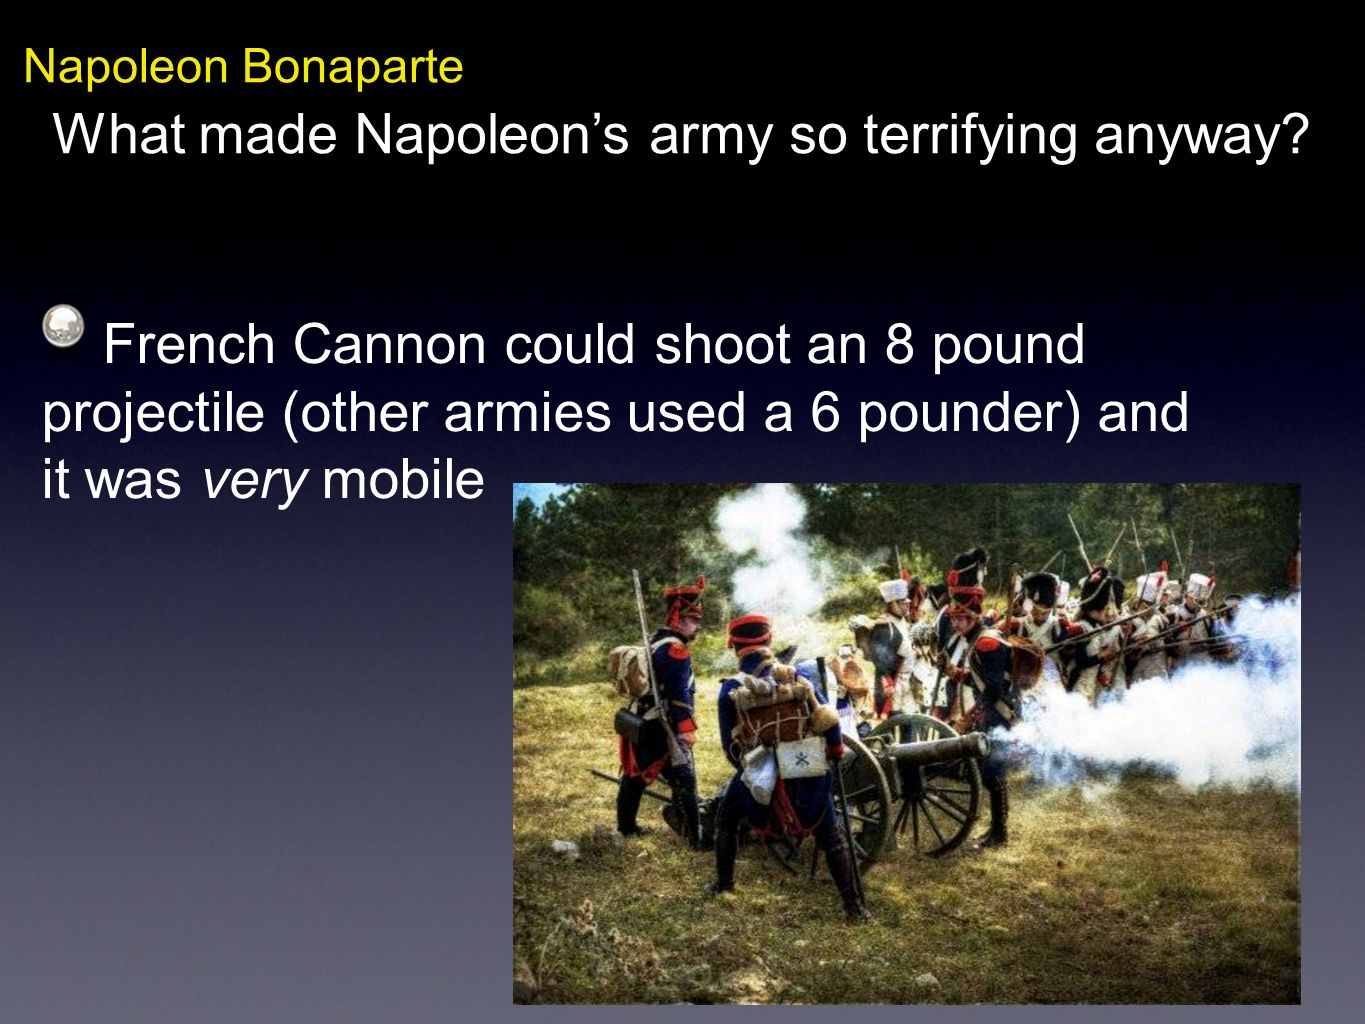 What made Napoleon's army so terrifying anyway